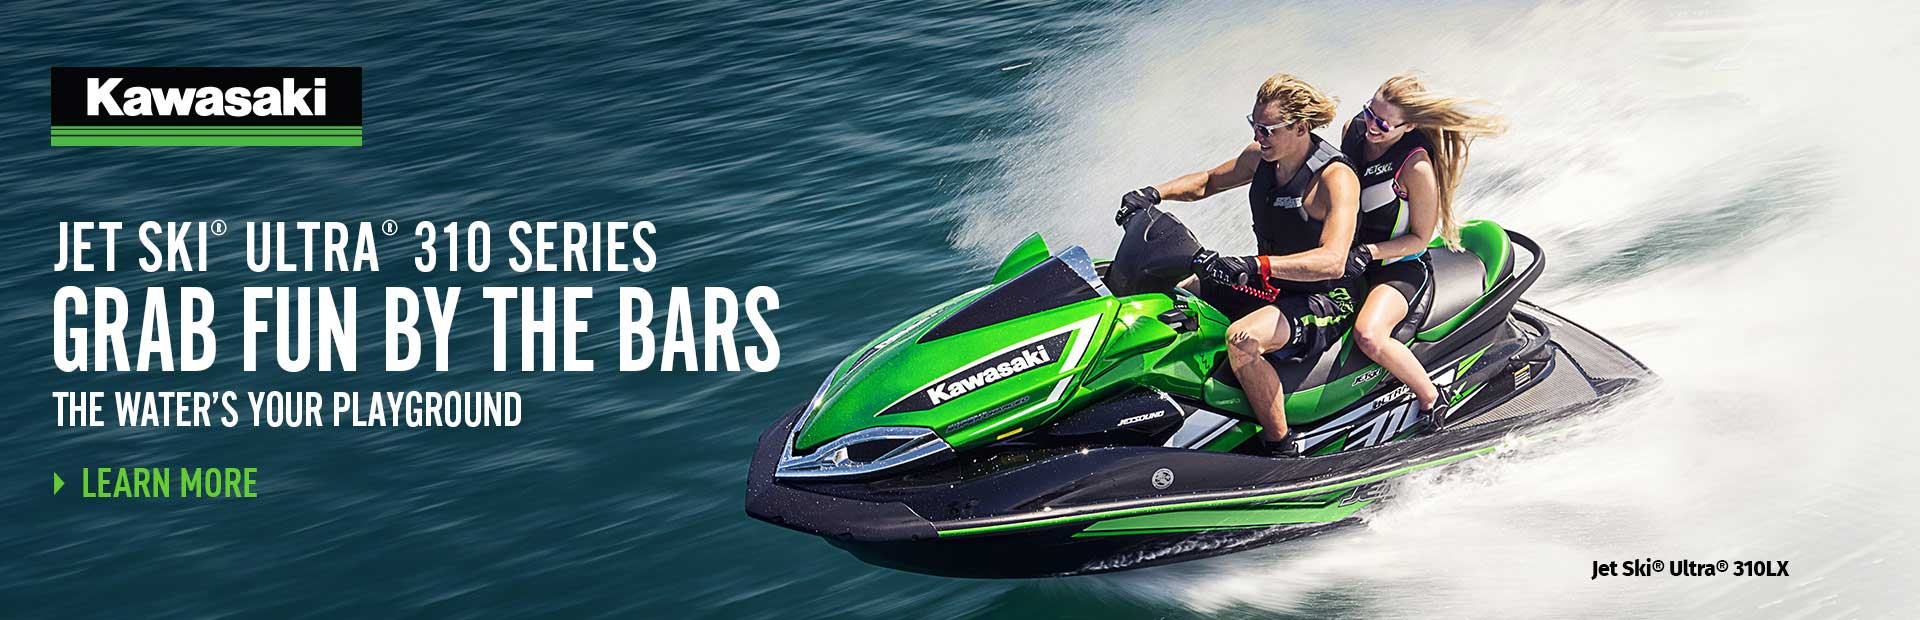 "2018 JET SKI® ULTRA® 310 SERIES ""GRAB FUN BY THE BARS"""